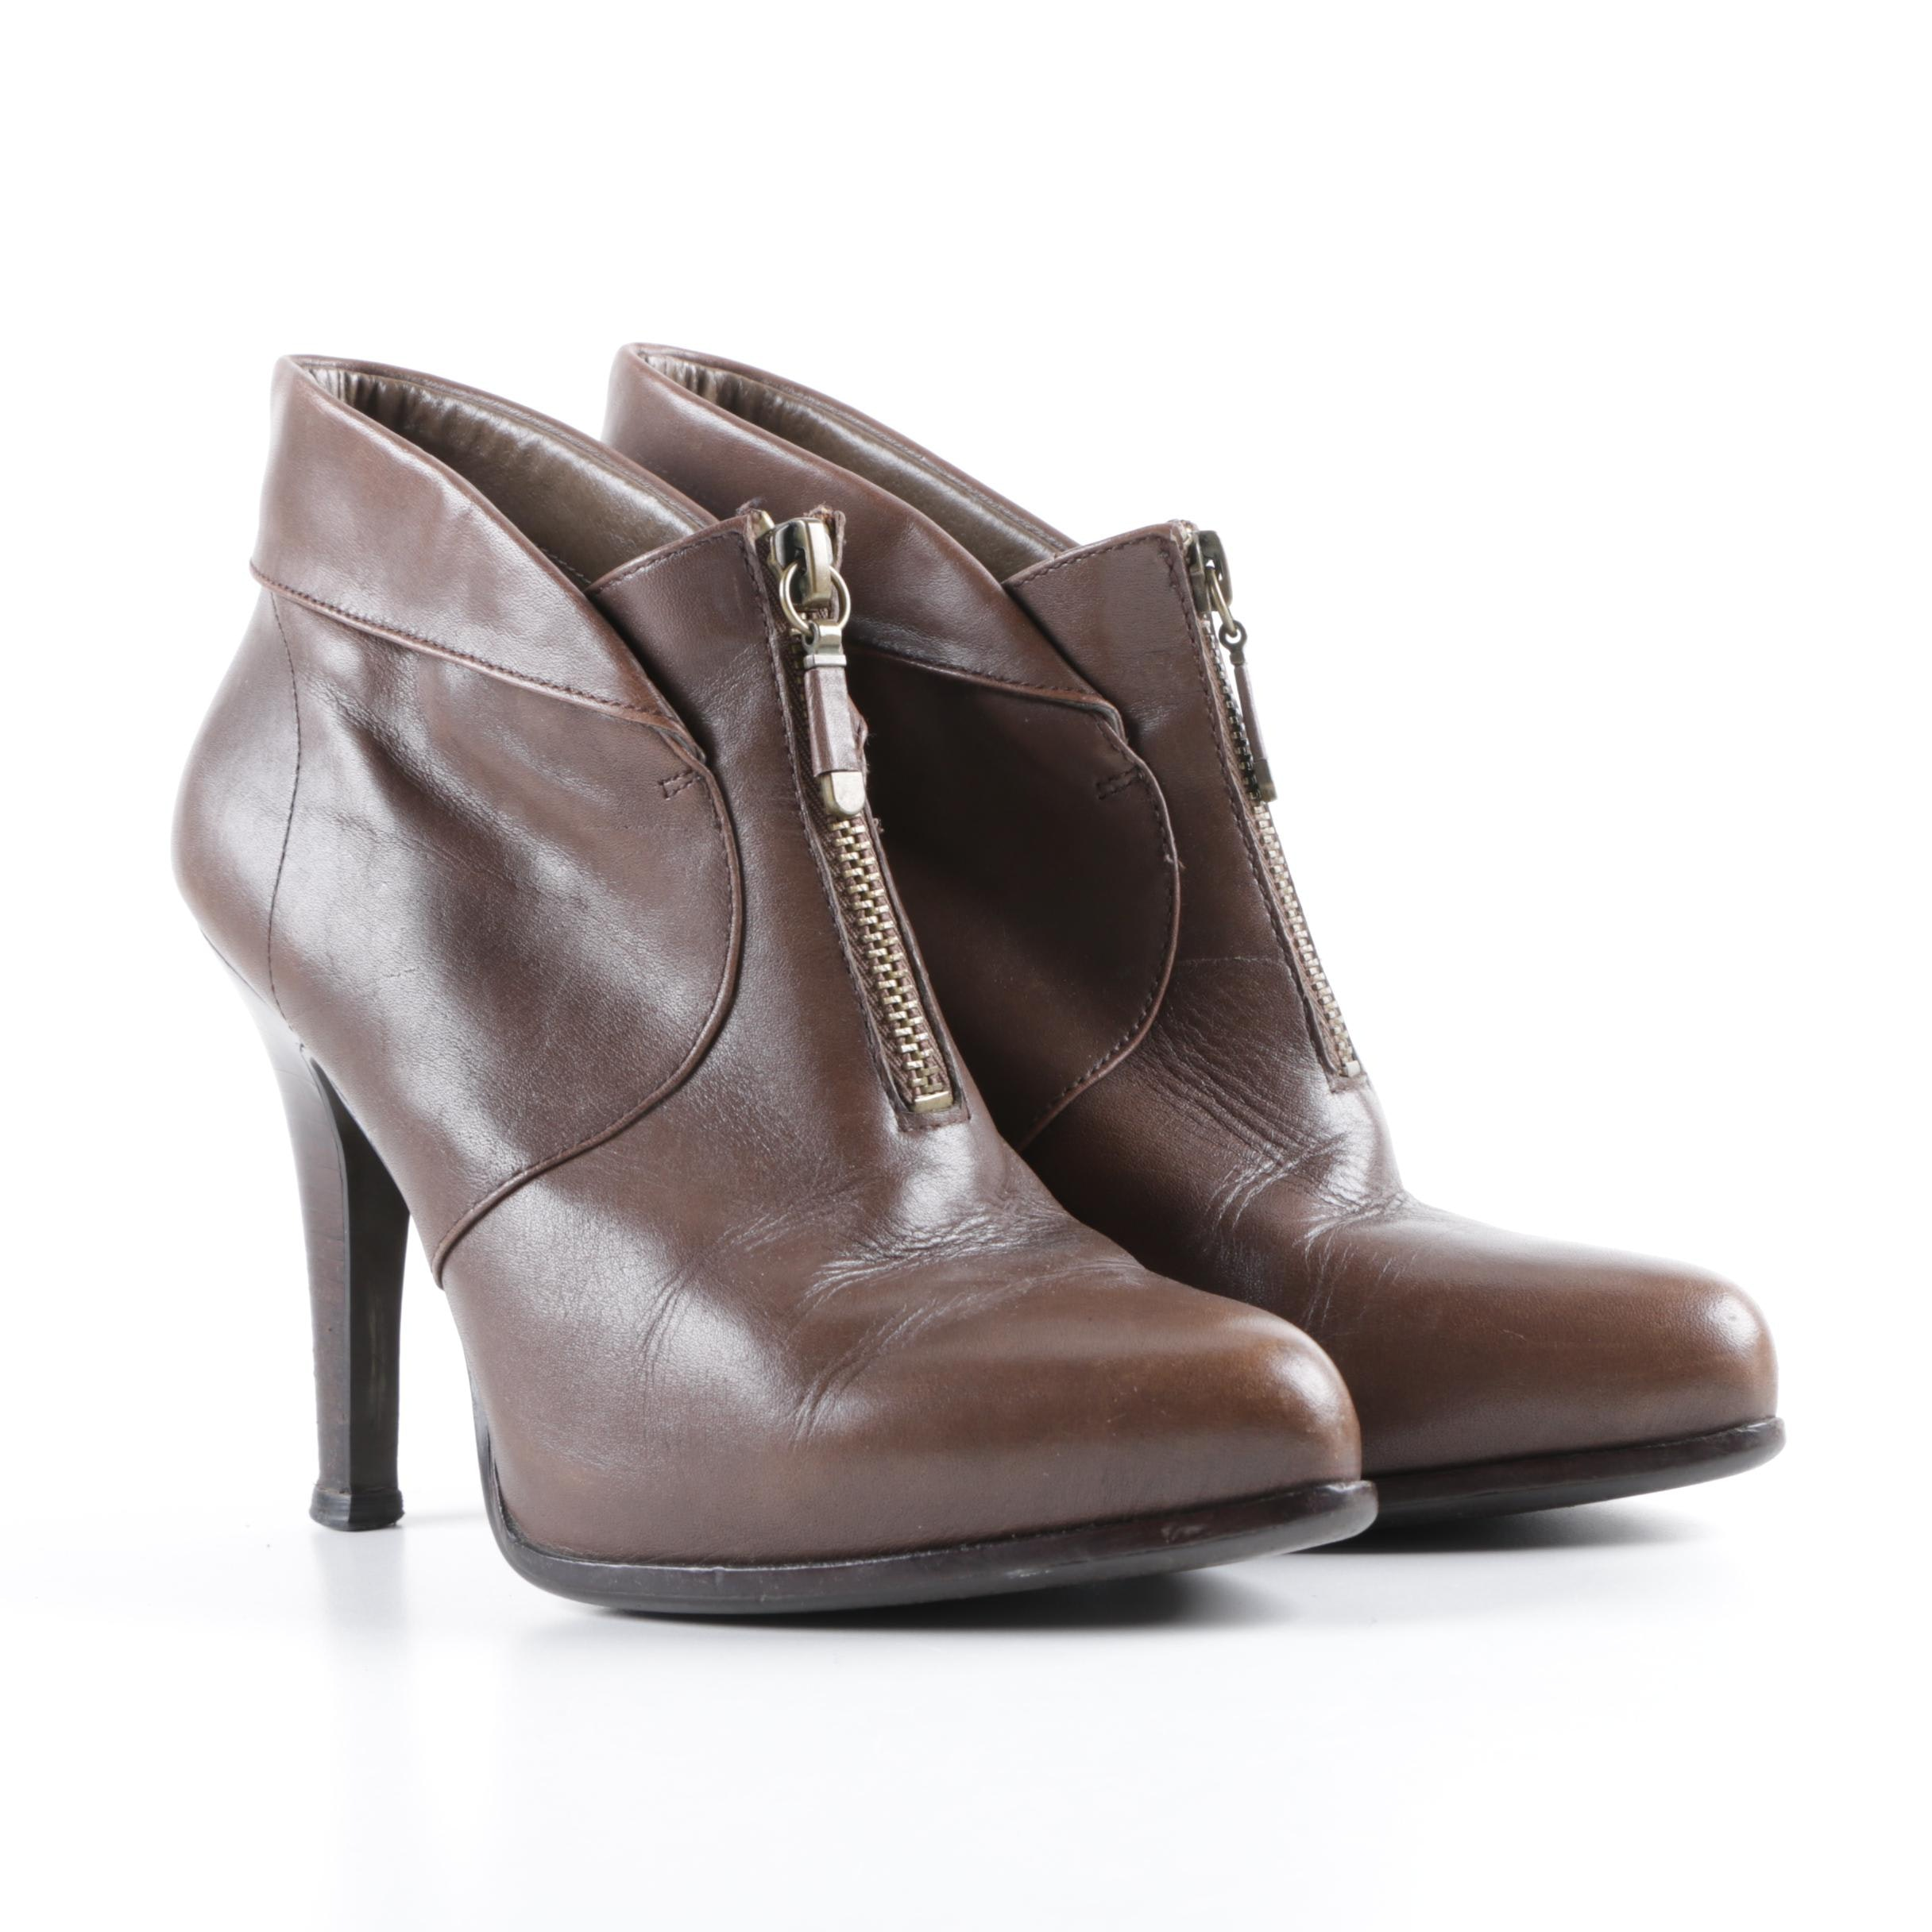 Women's B. Makowsky Brown Faux Leather Ankle Booties